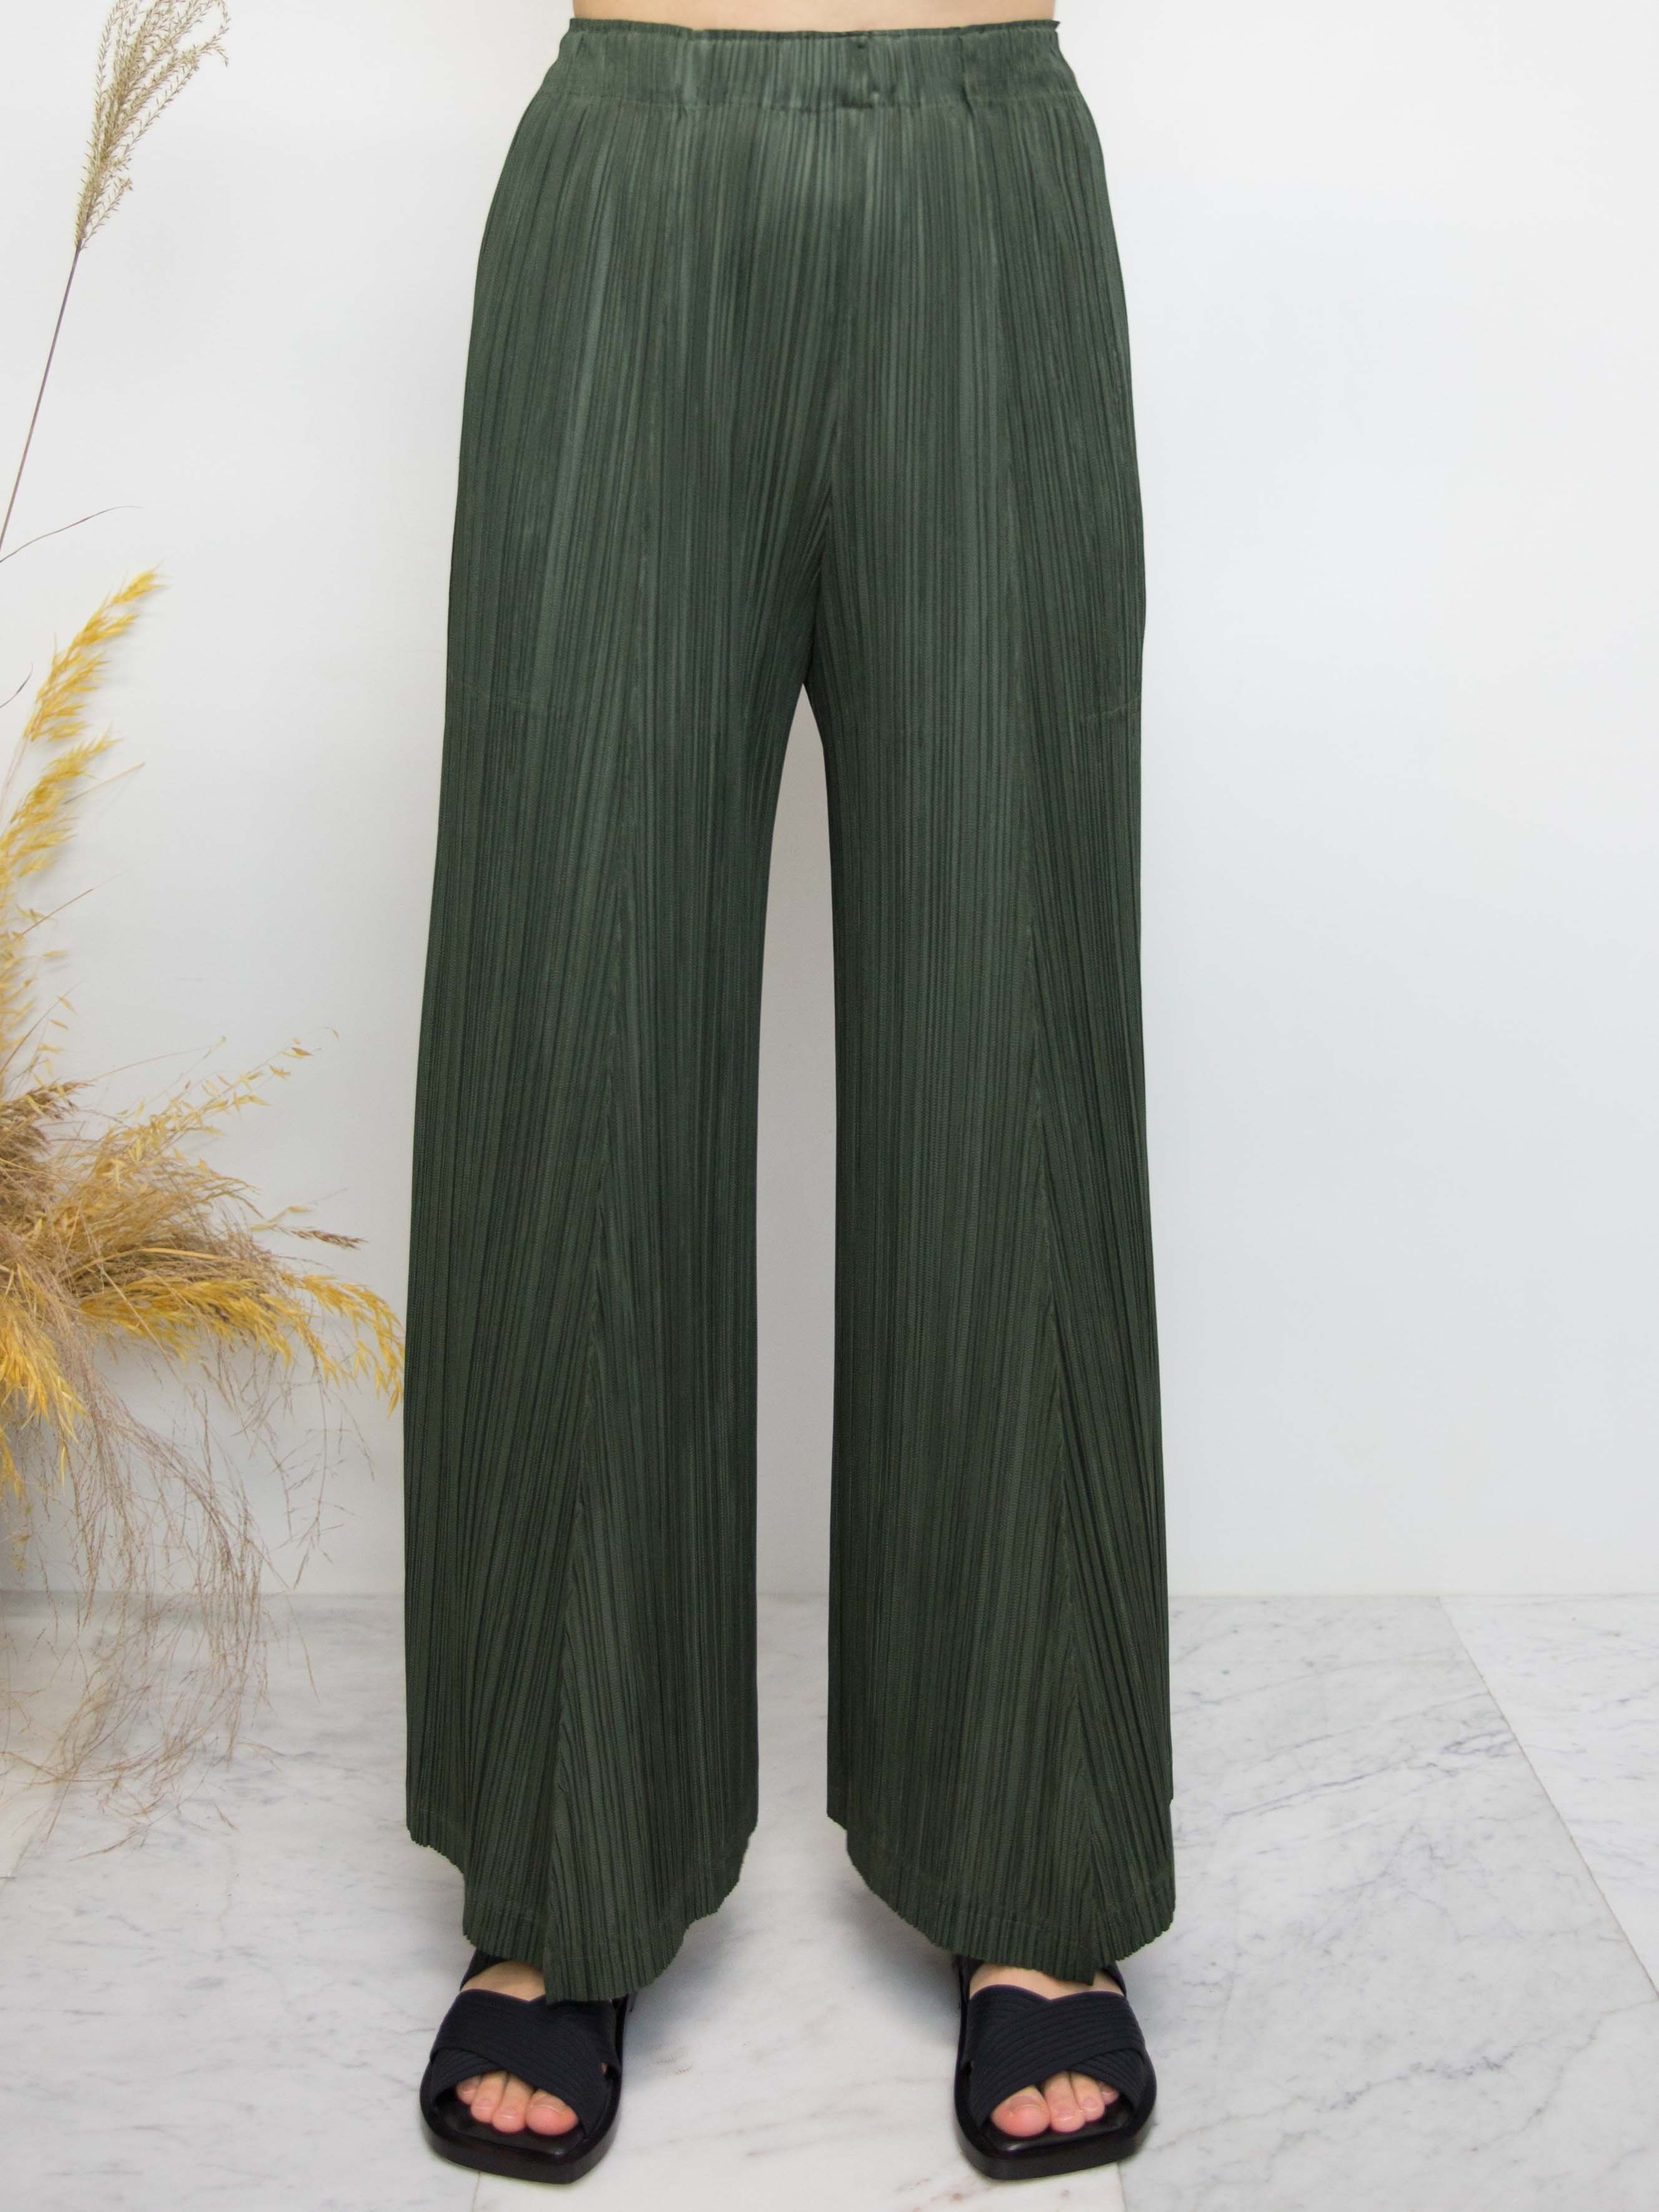 ae494b42a00c PLEATS PLEASE ISSEY MIYAKE Thicker Bottoms 2 Wide Pants